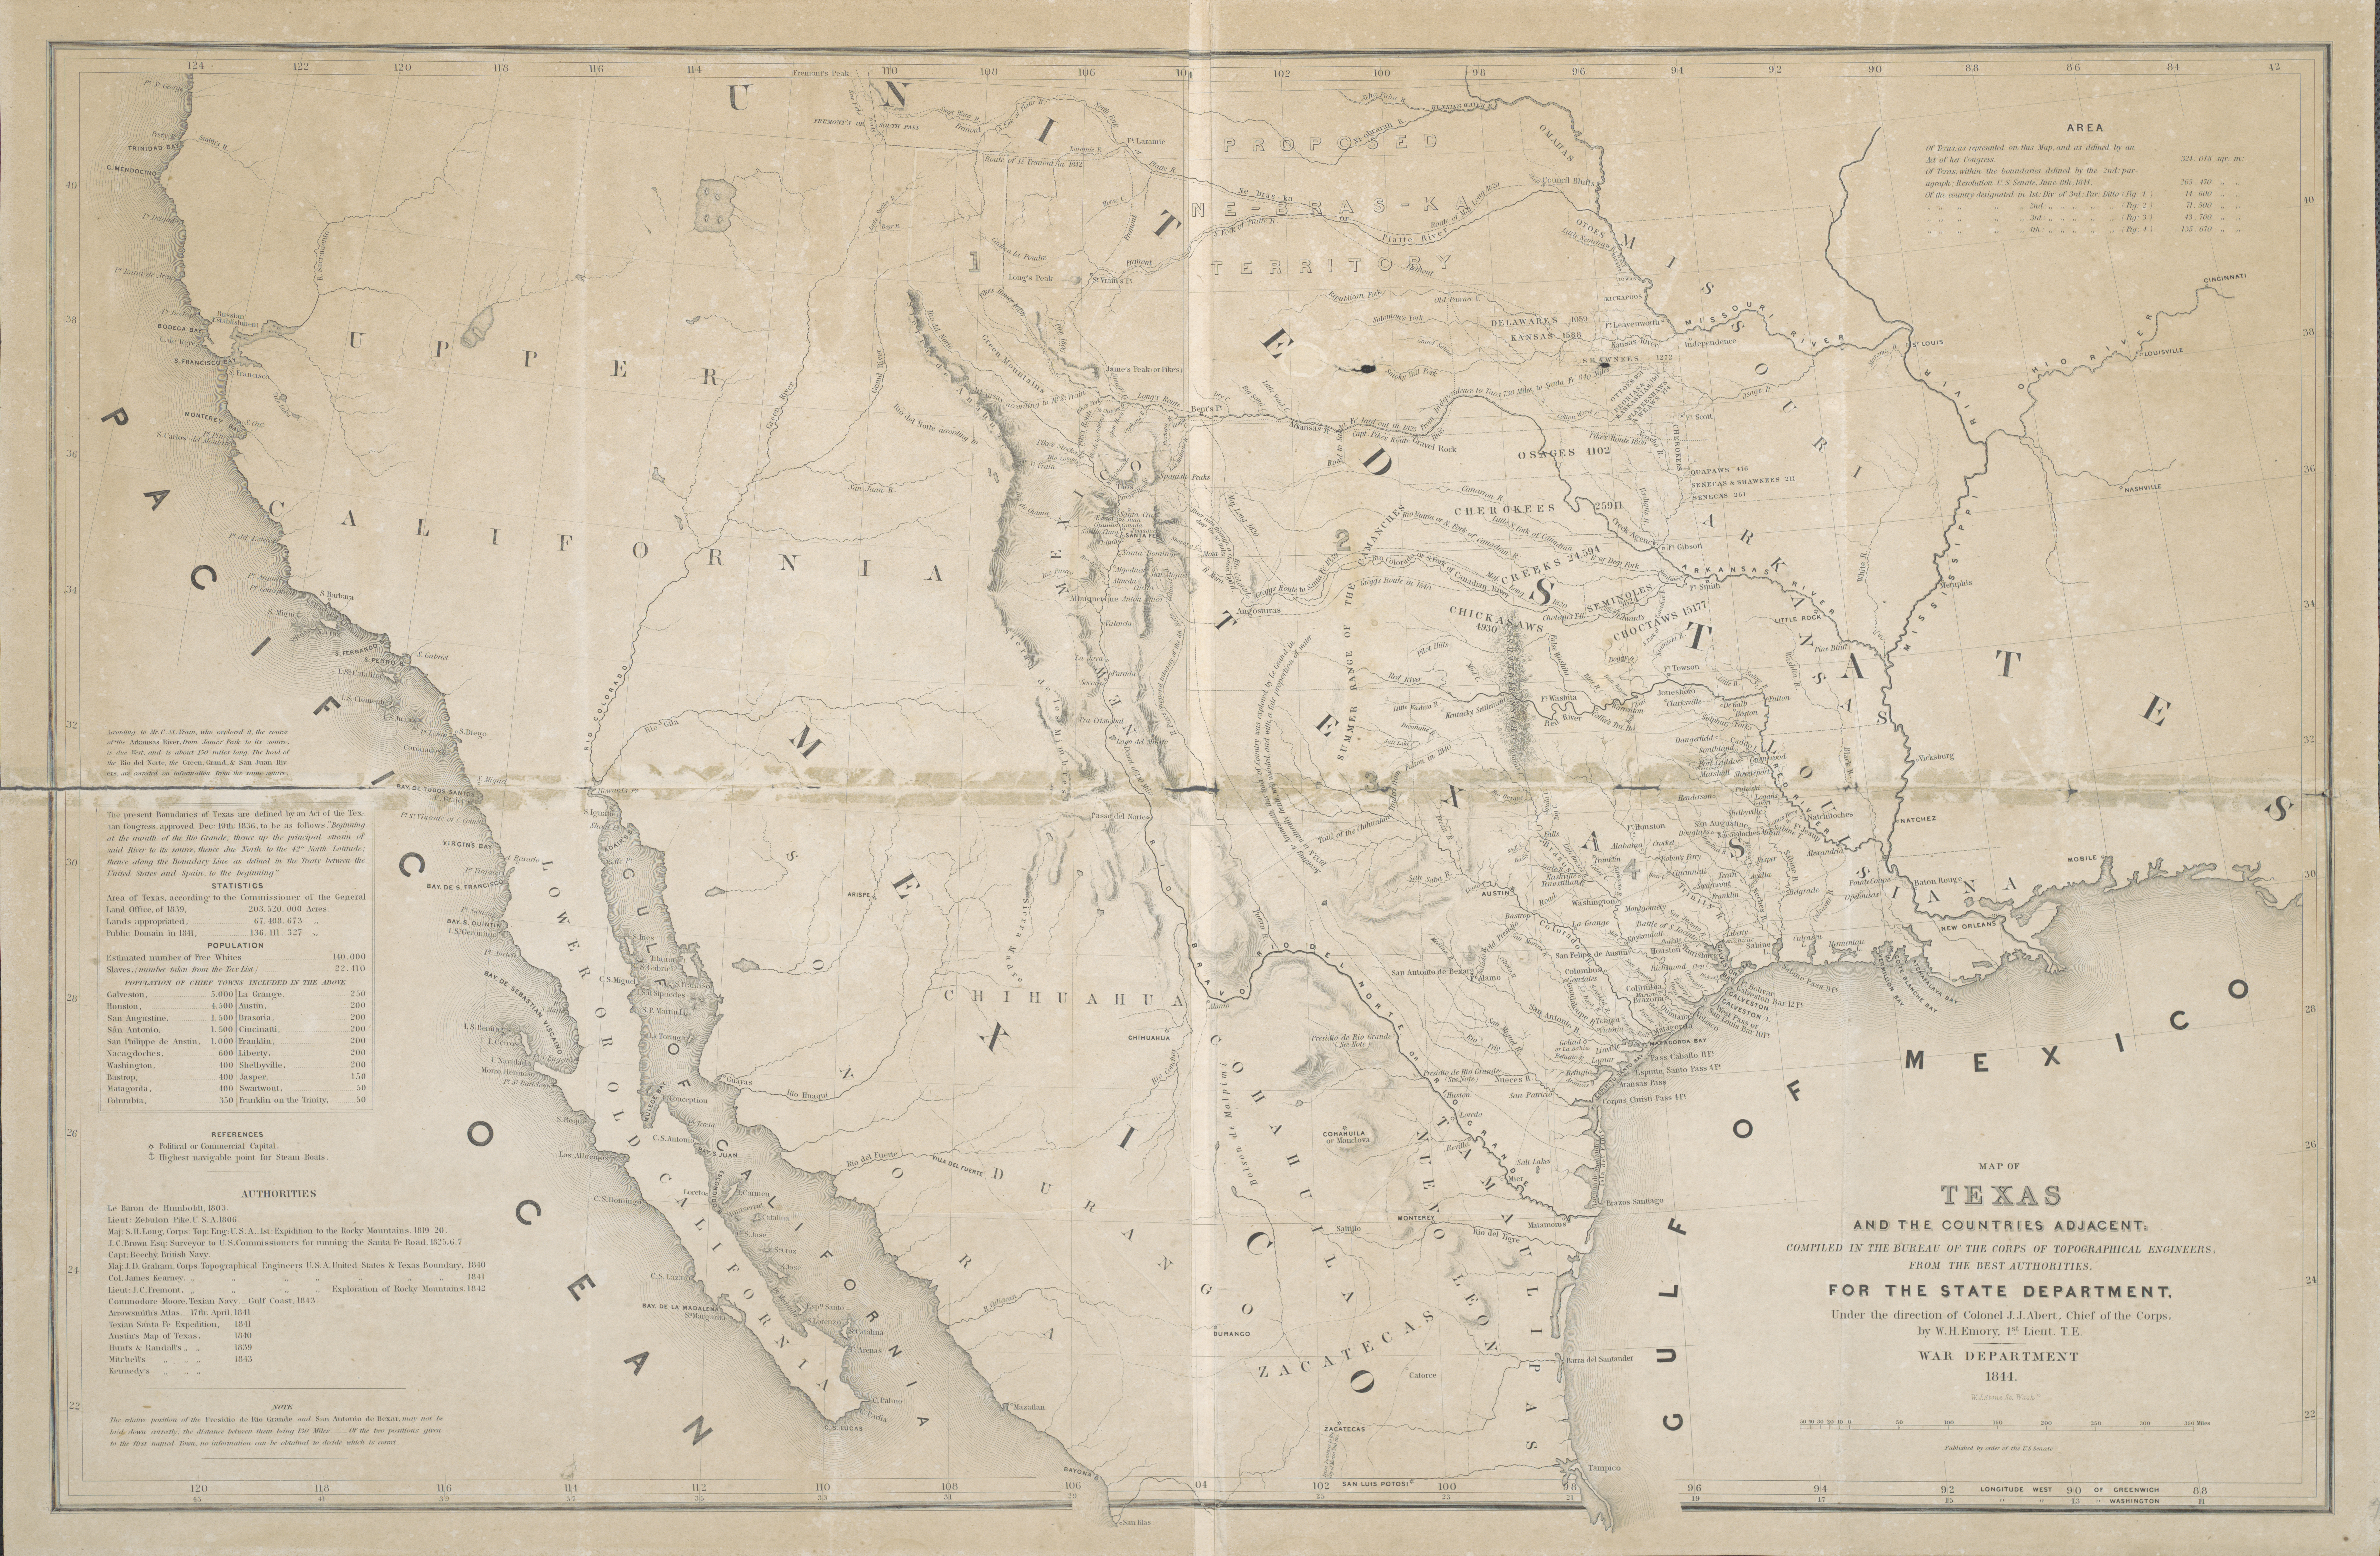 map of texas and the countries adjacent compiled in the bureau of the corps of topographical engineers for the state department under the direction of